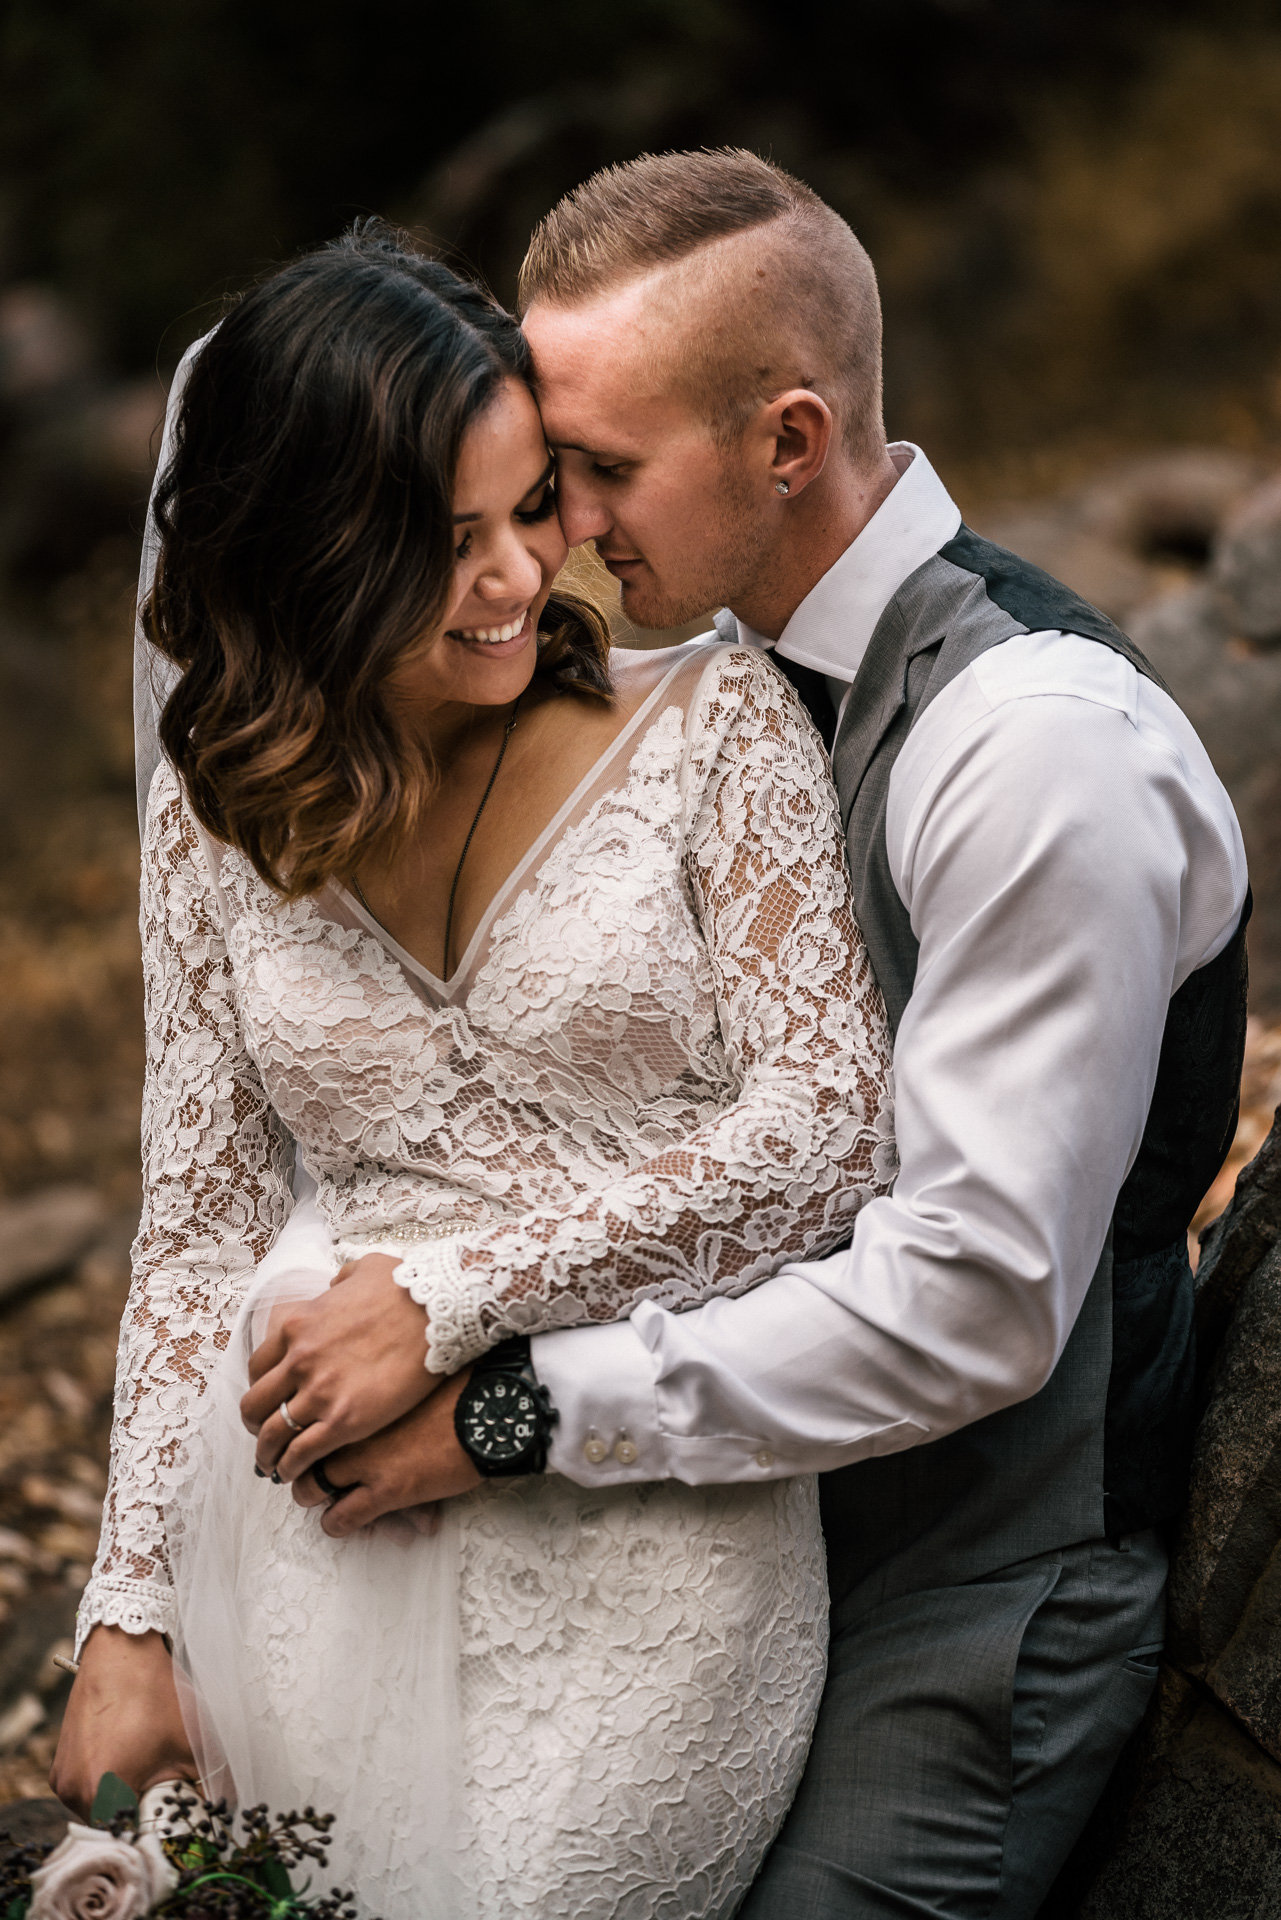 Bride and groom intimate wedding photography at rustic pymm ranch wedding venue in winchester california